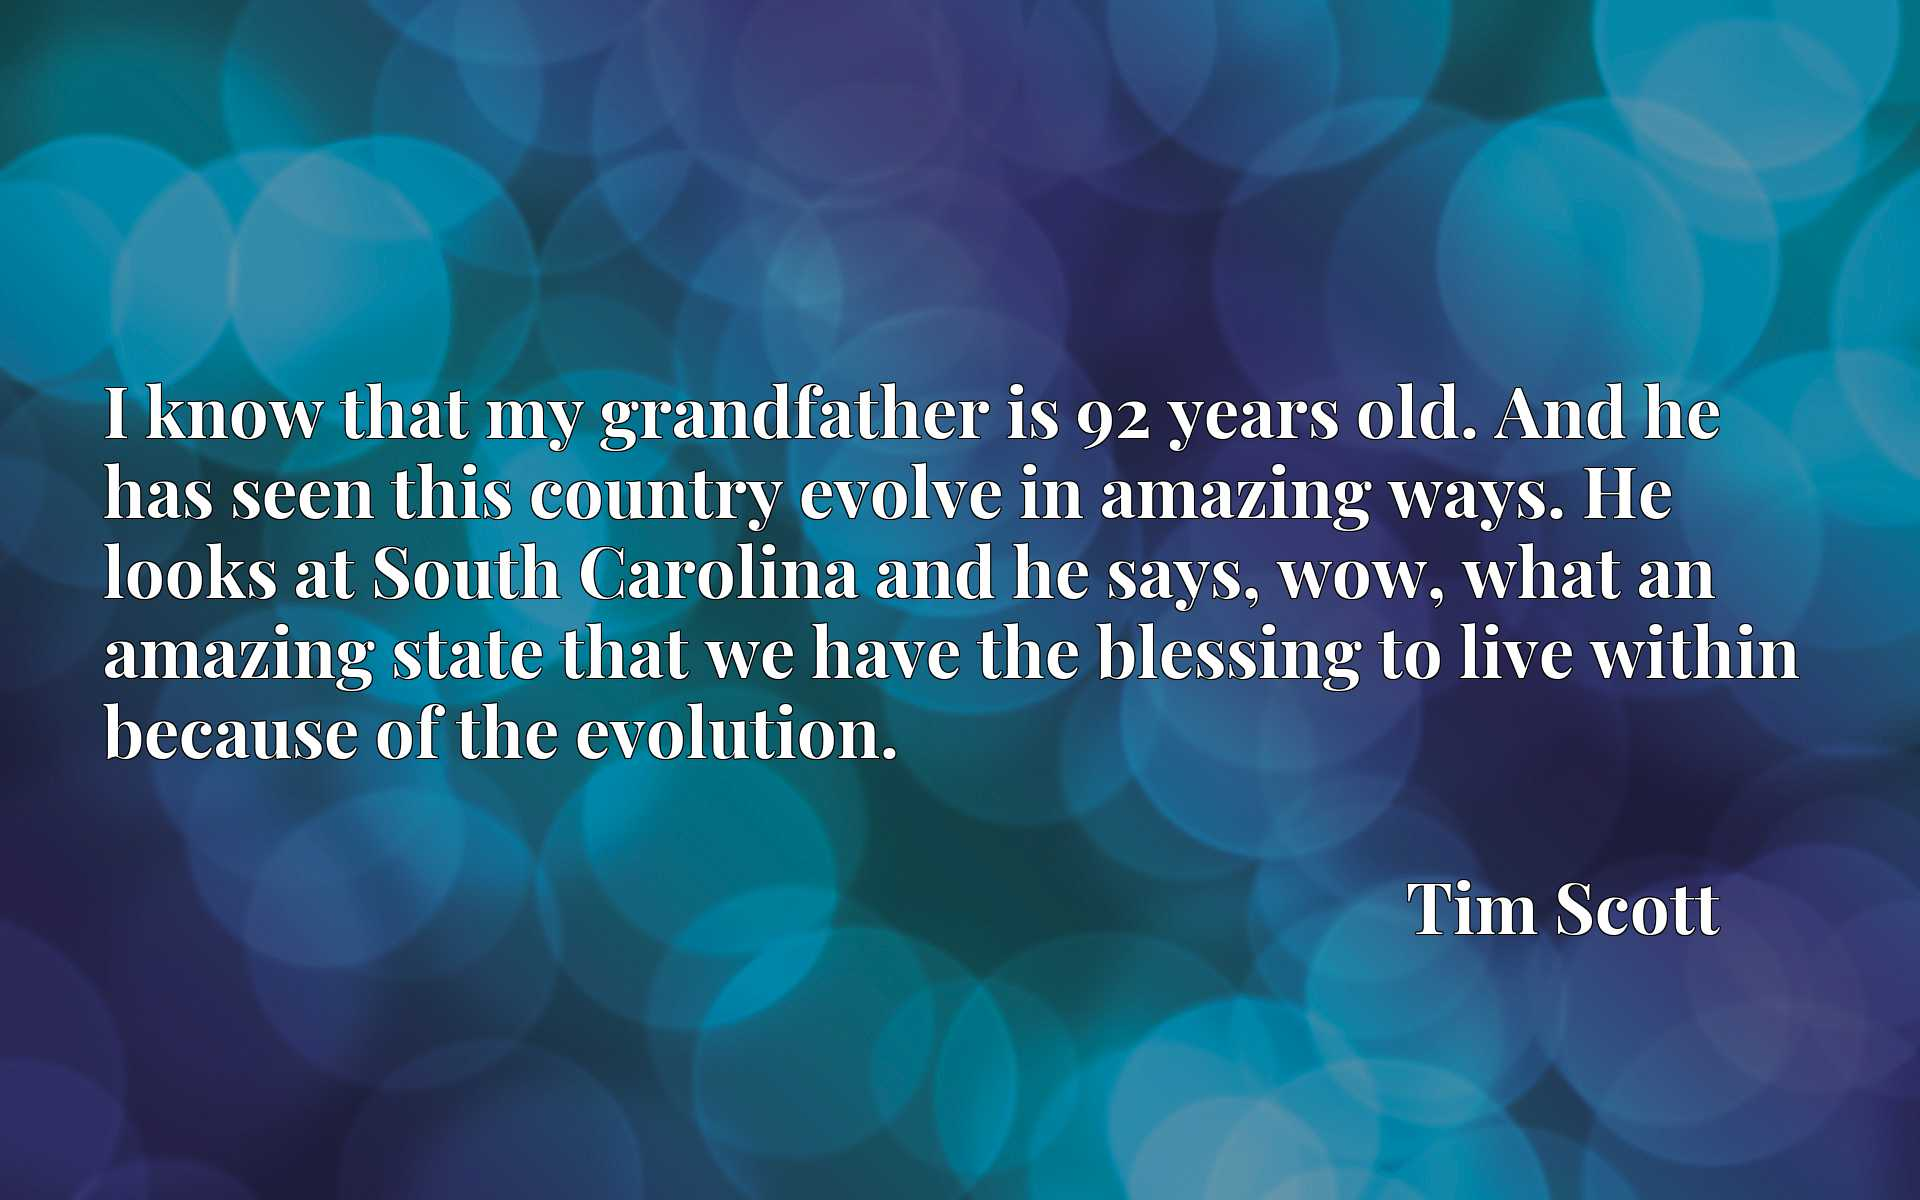 I know that my grandfather is 92 years old. And he has seen this country evolve in amazing ways. He looks at South Carolina and he says, wow, what an amazing state that we have the blessing to live within because of the evolution.